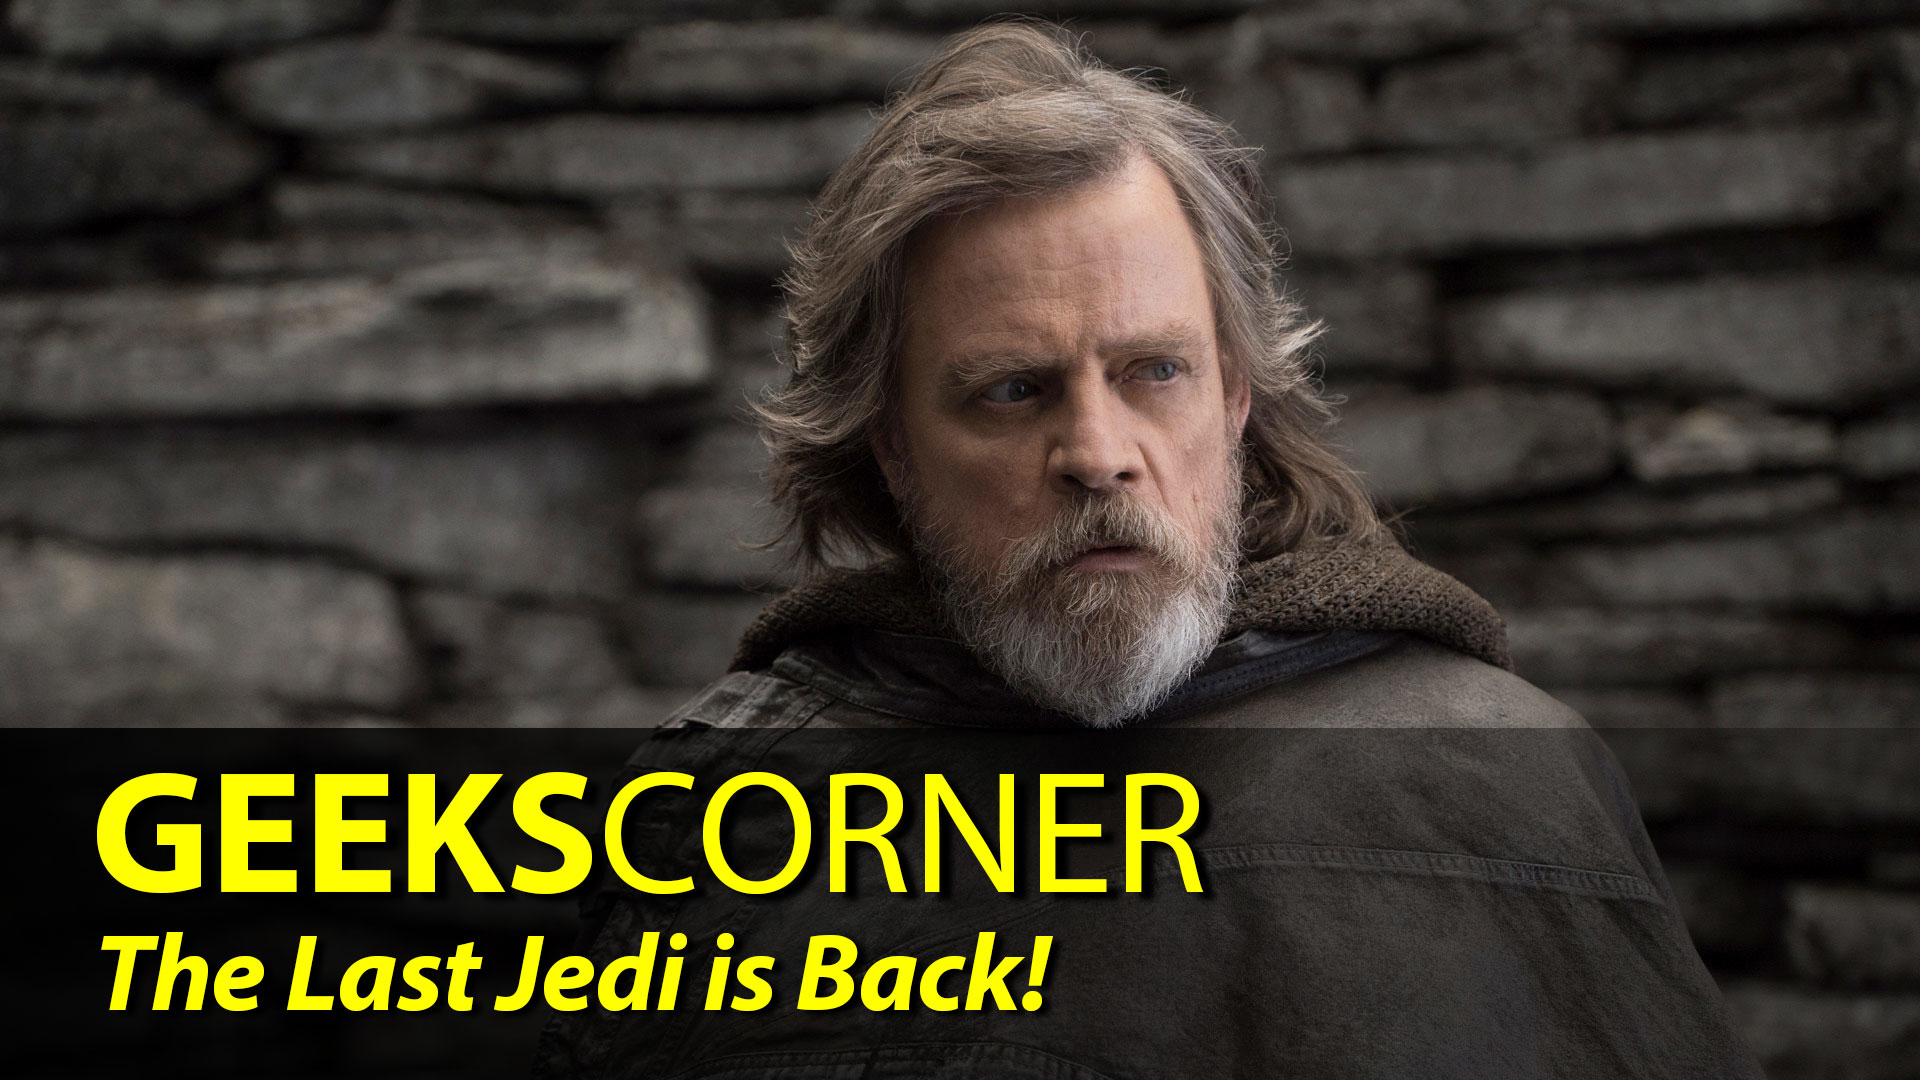 The Last Jedi is Back! - GEEKS CORNER - Episode 840